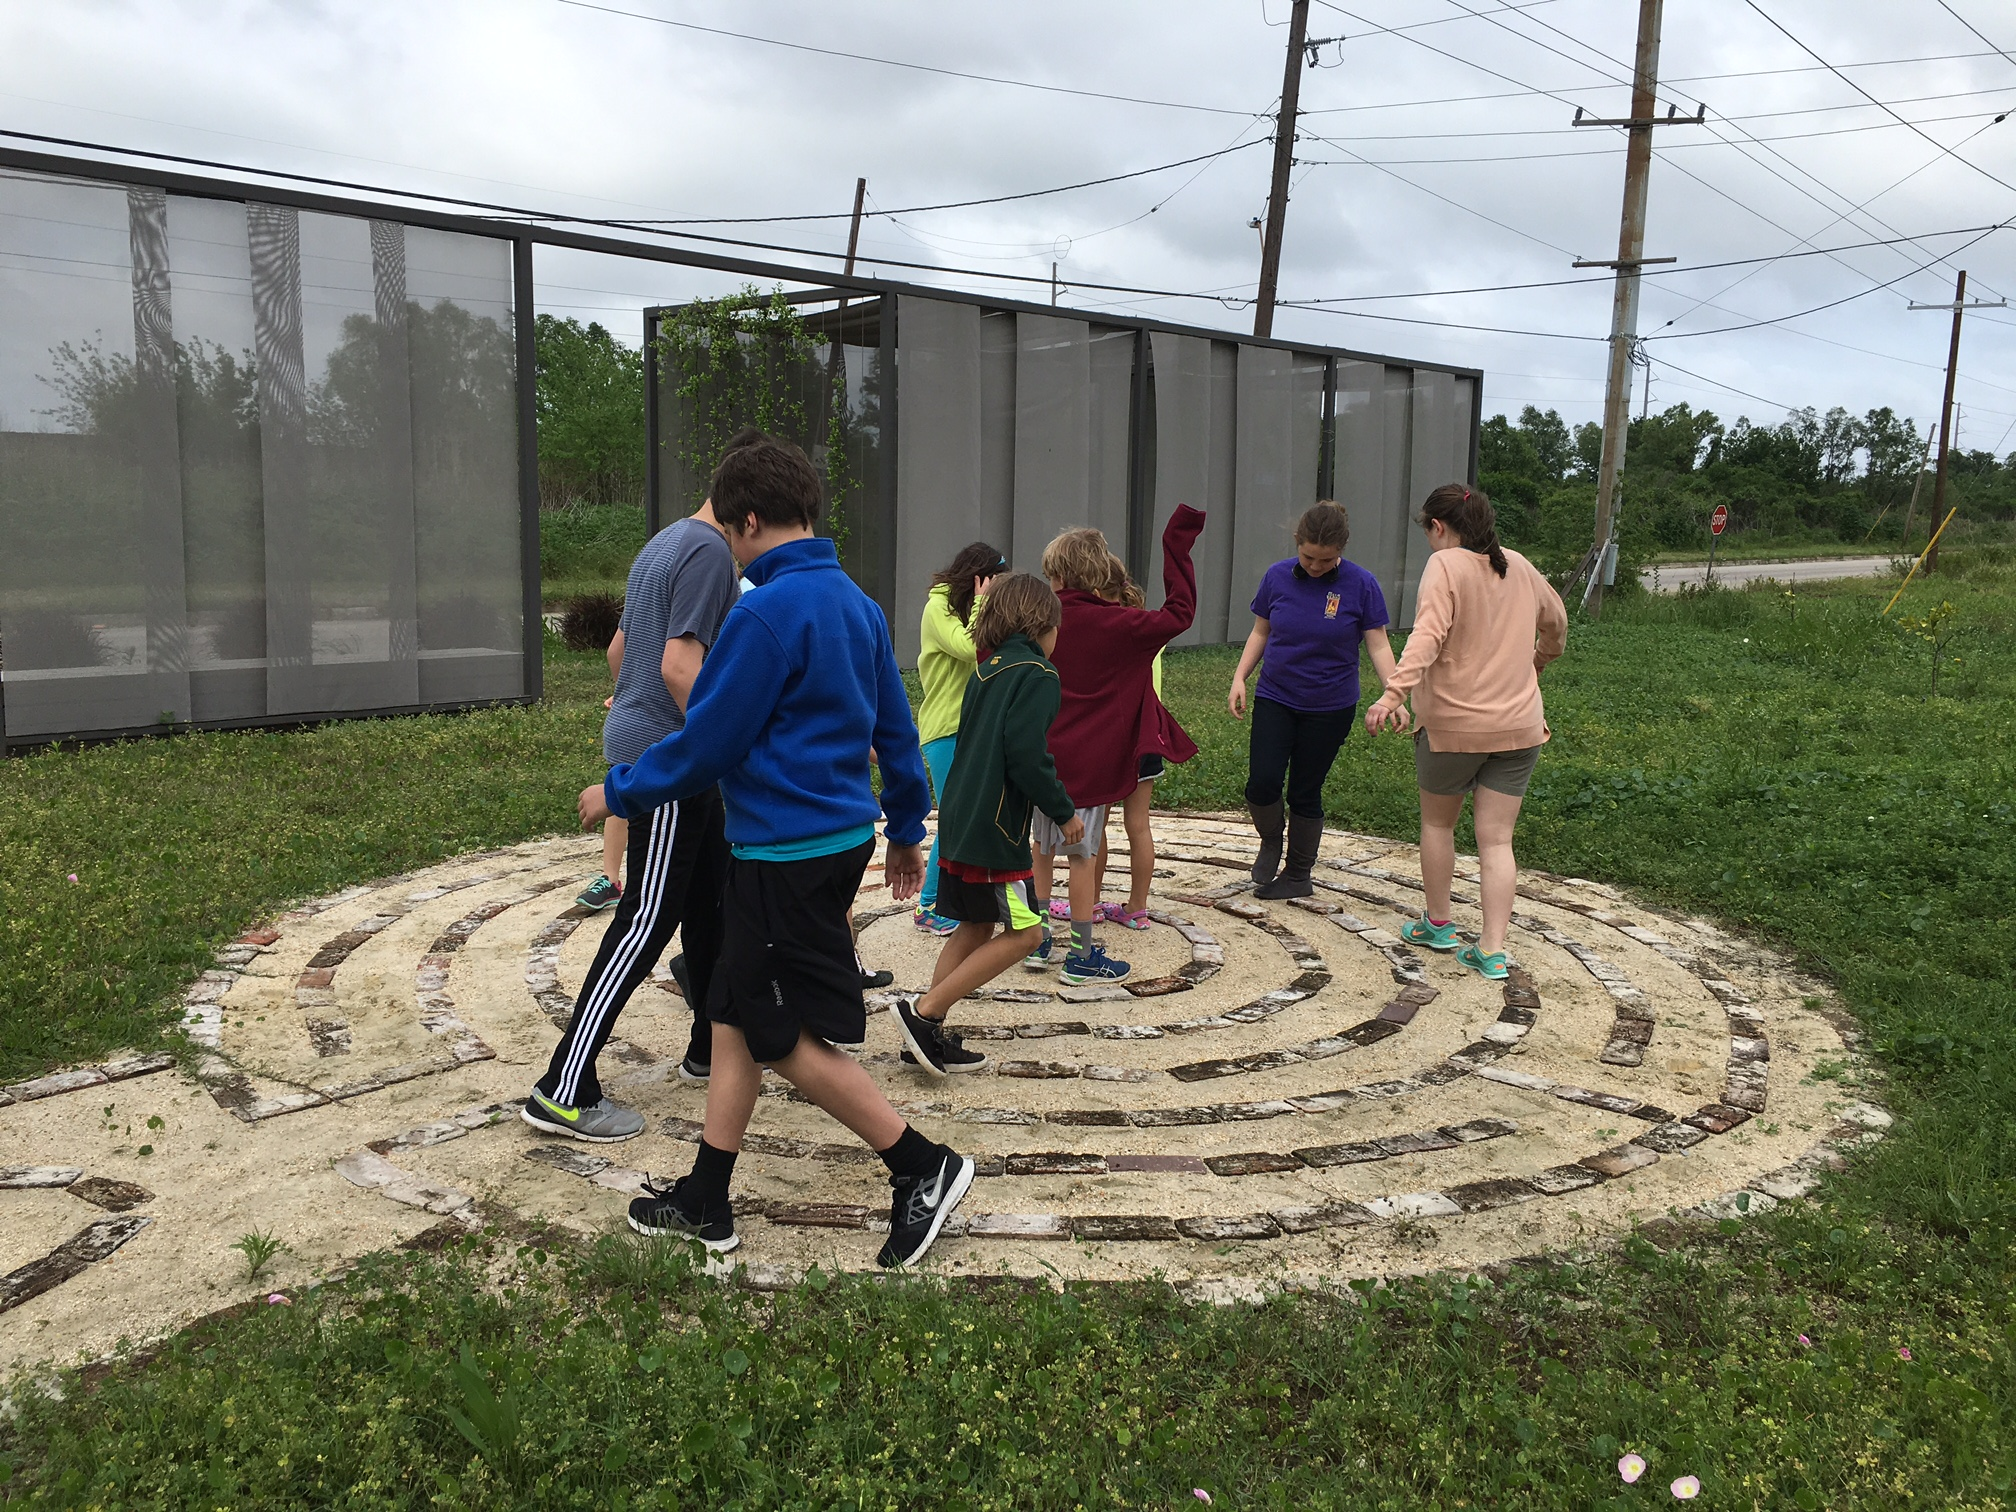 Kids playing on the CSED Labyrinth during the field trip.